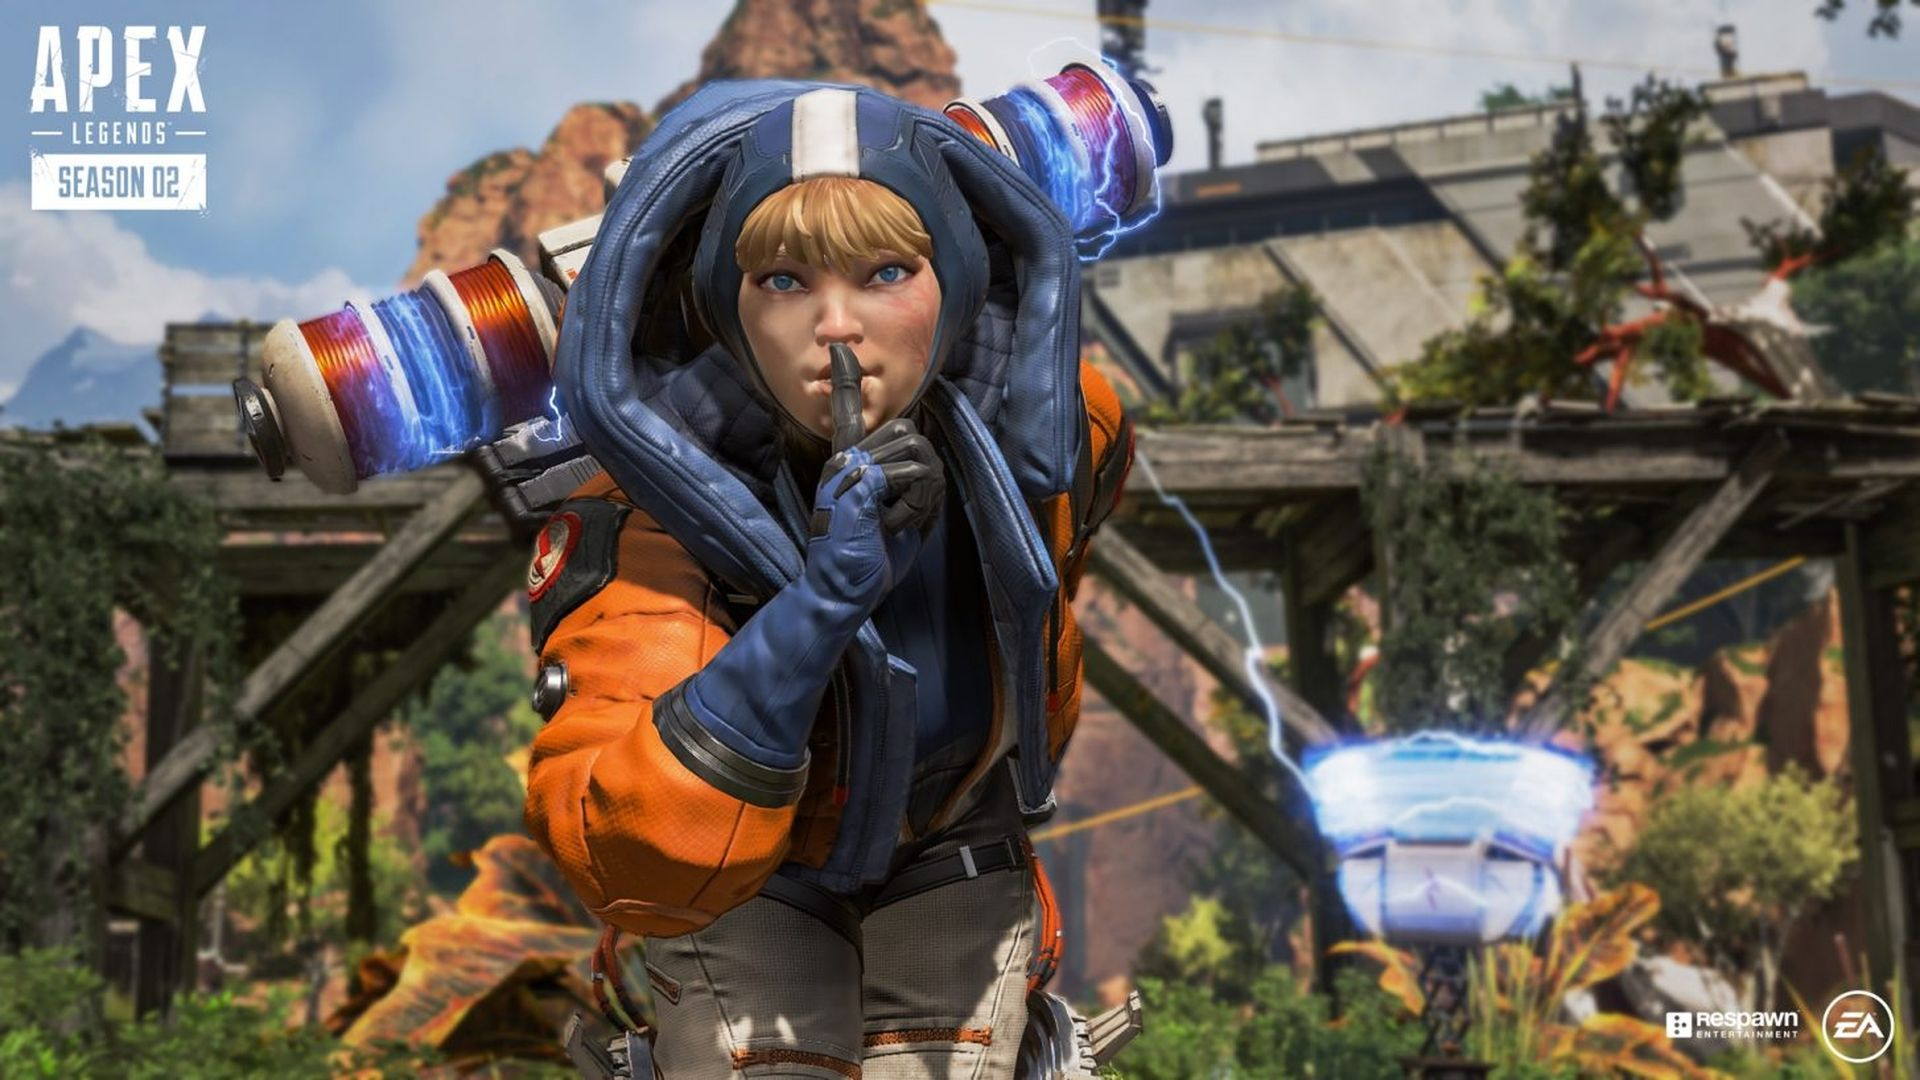 wattson apex legends season 2